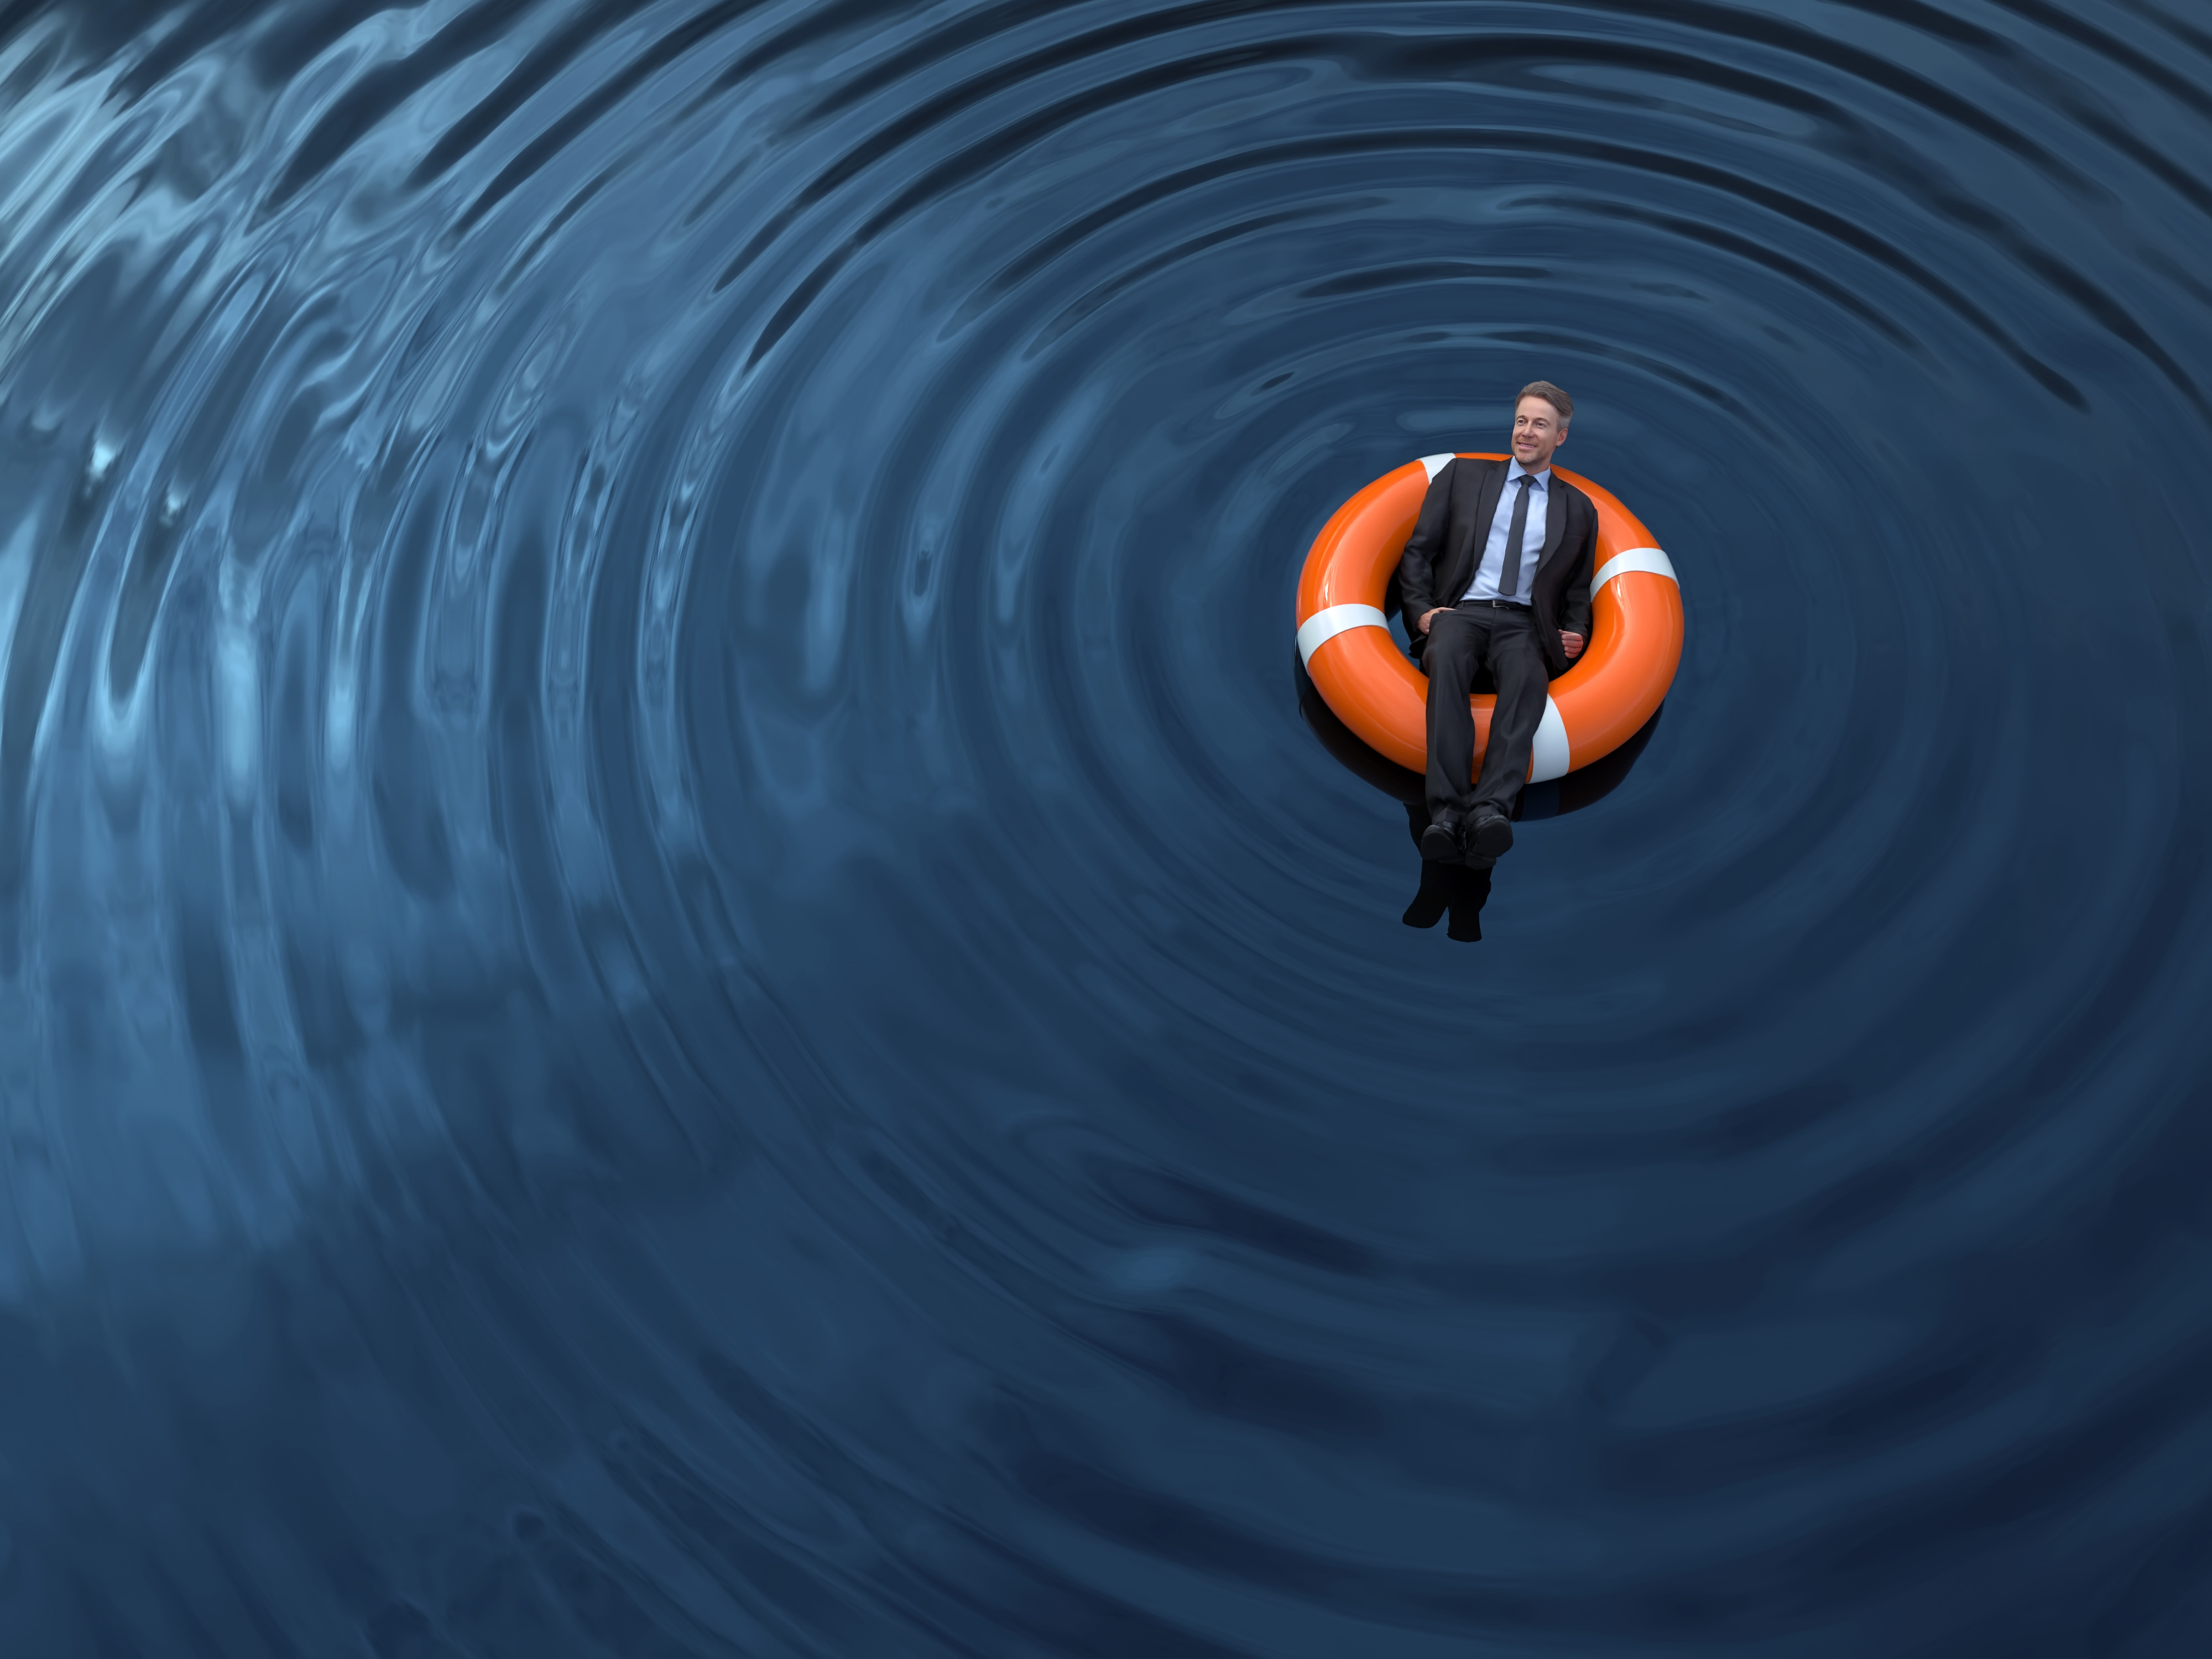 man in a suit lounging in an orange innertube in the middle of a body of water